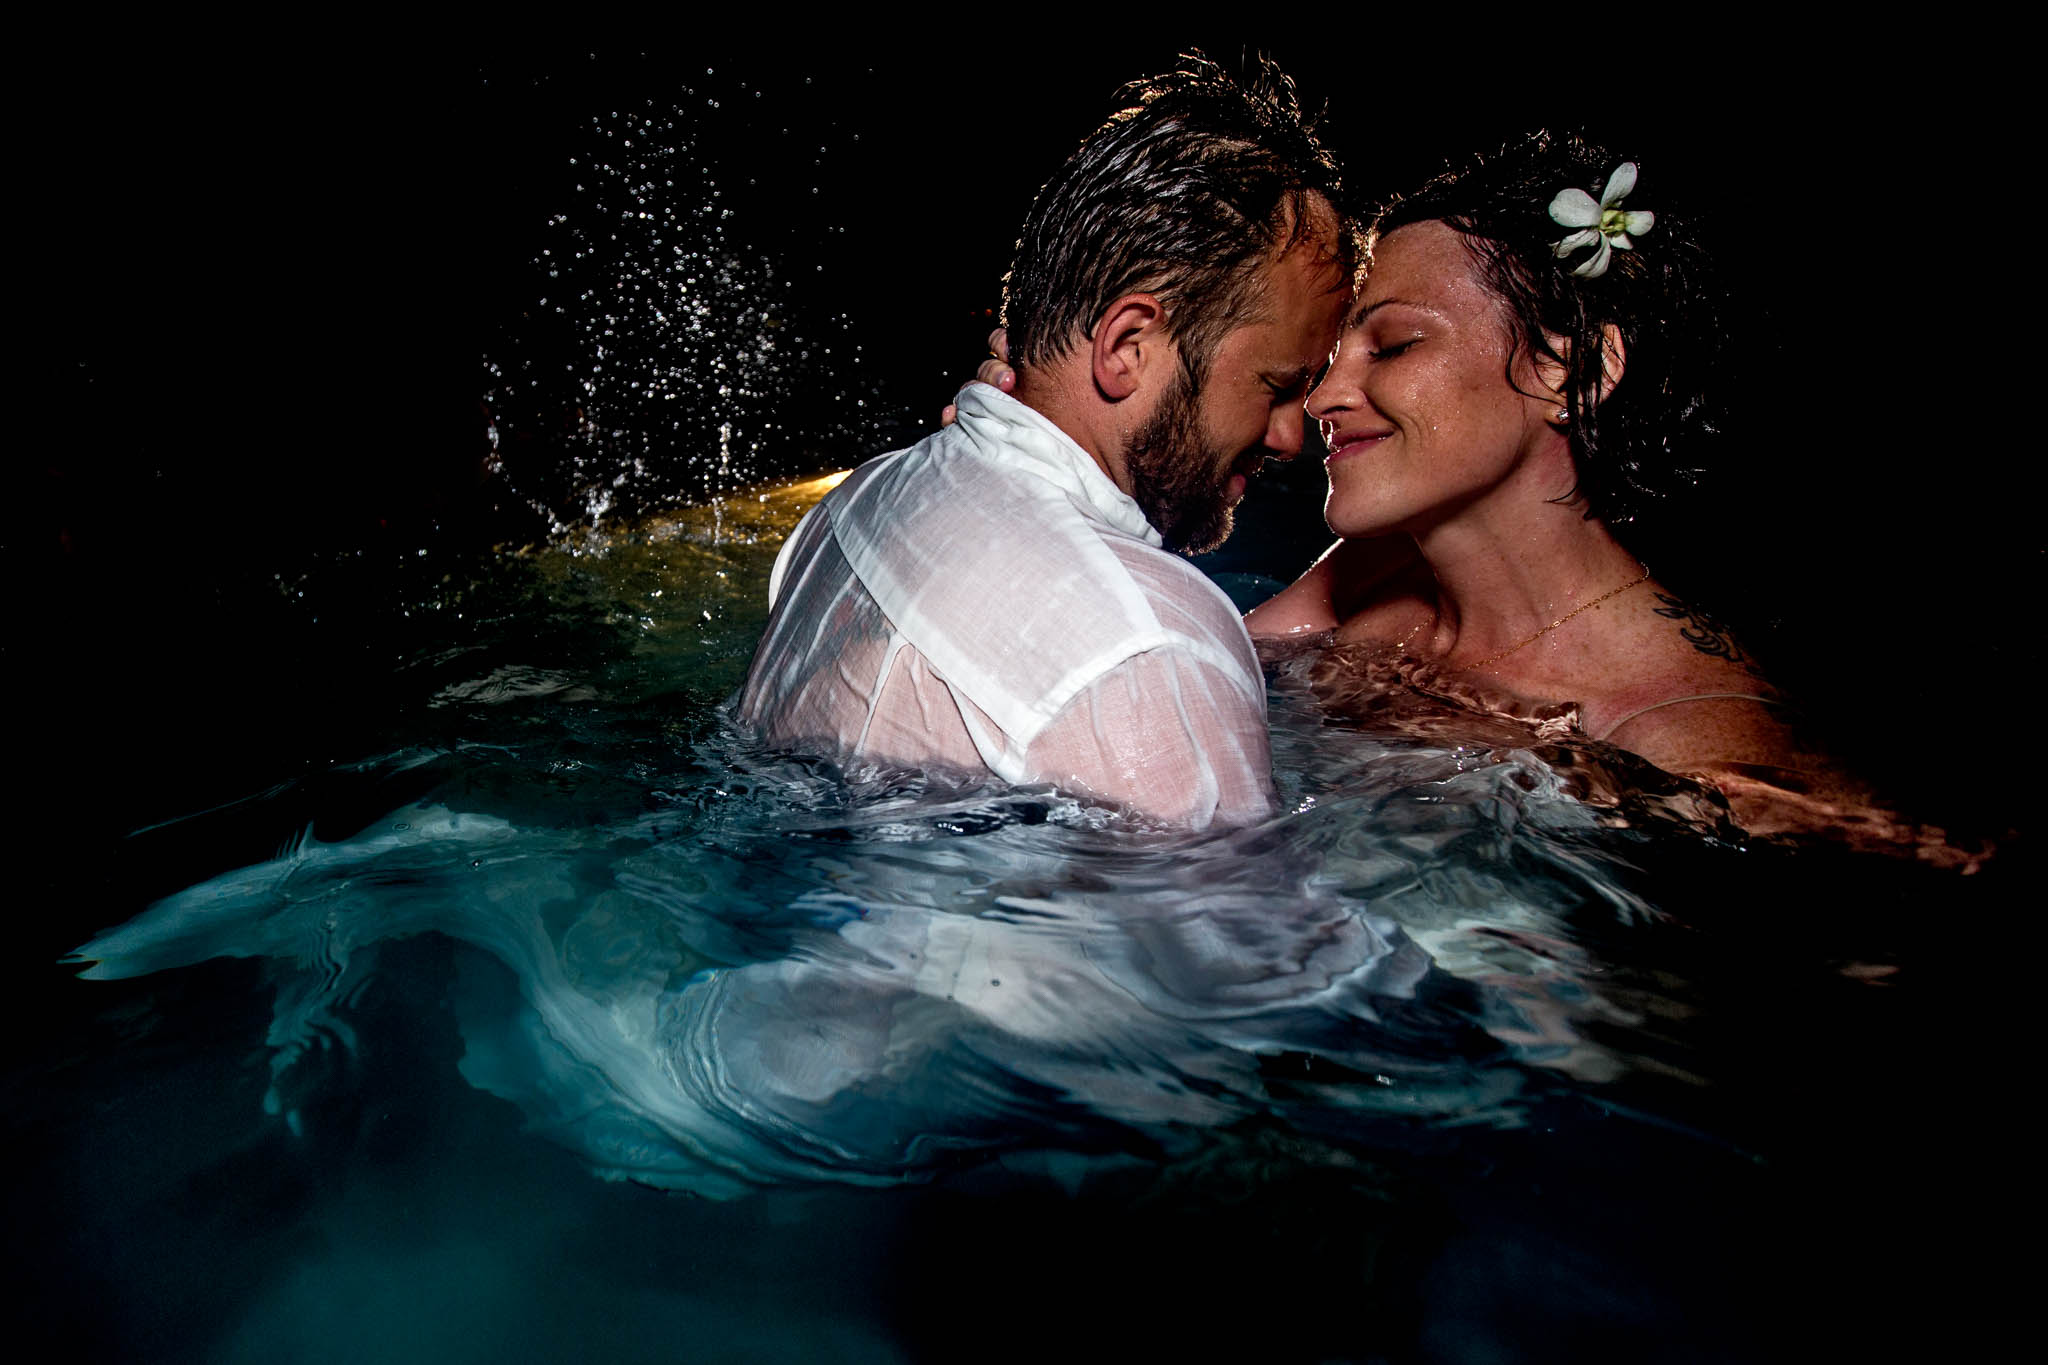 Bride and Groom intimate in pool party at Belize Wedding